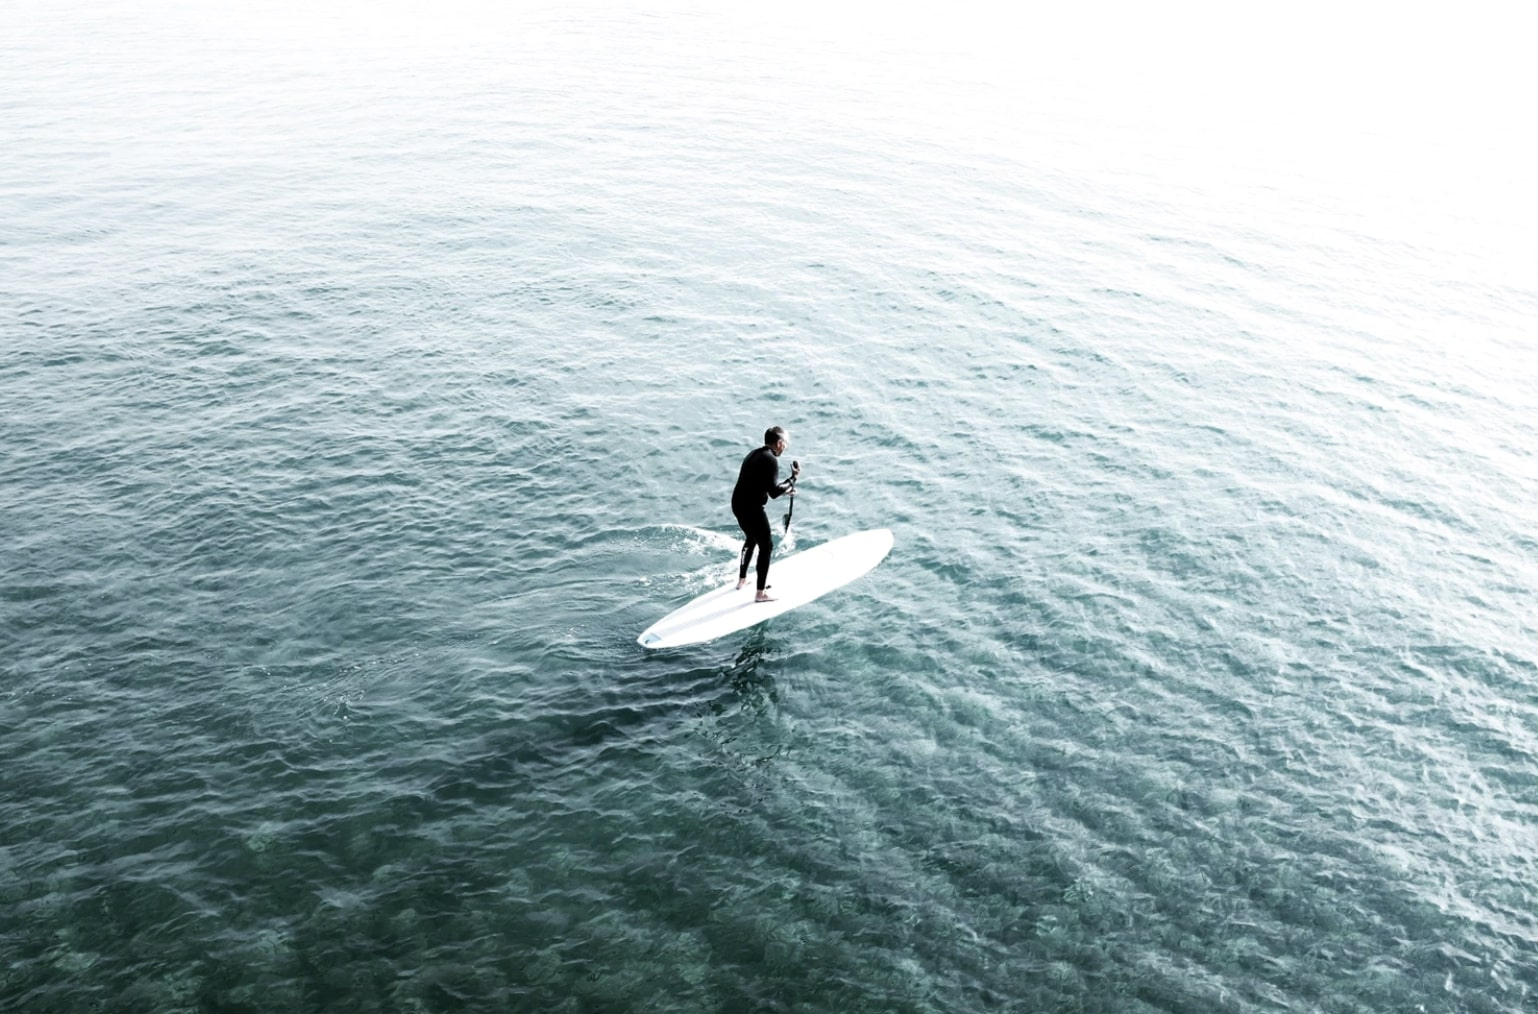 Paddleboarding Outdoor activities in UK